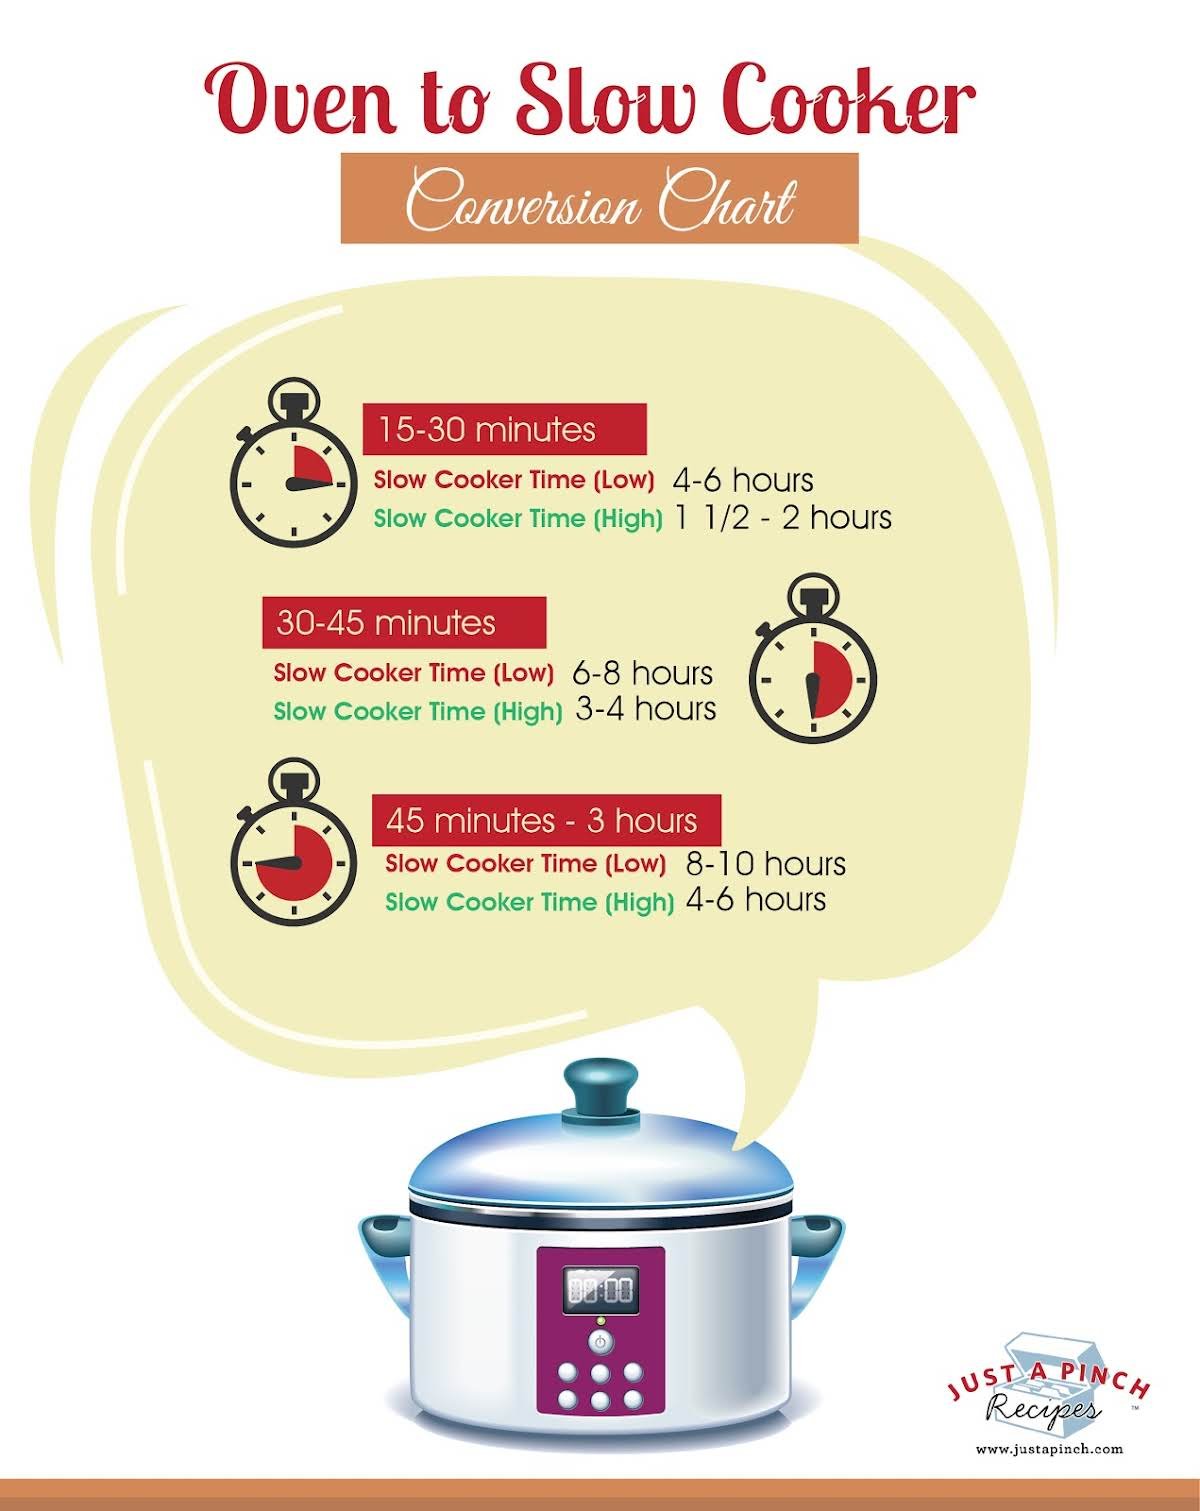 Oven to slow cooker conversion chart just a pinch food bites oven to slow cooker conversion chart nvjuhfo Image collections